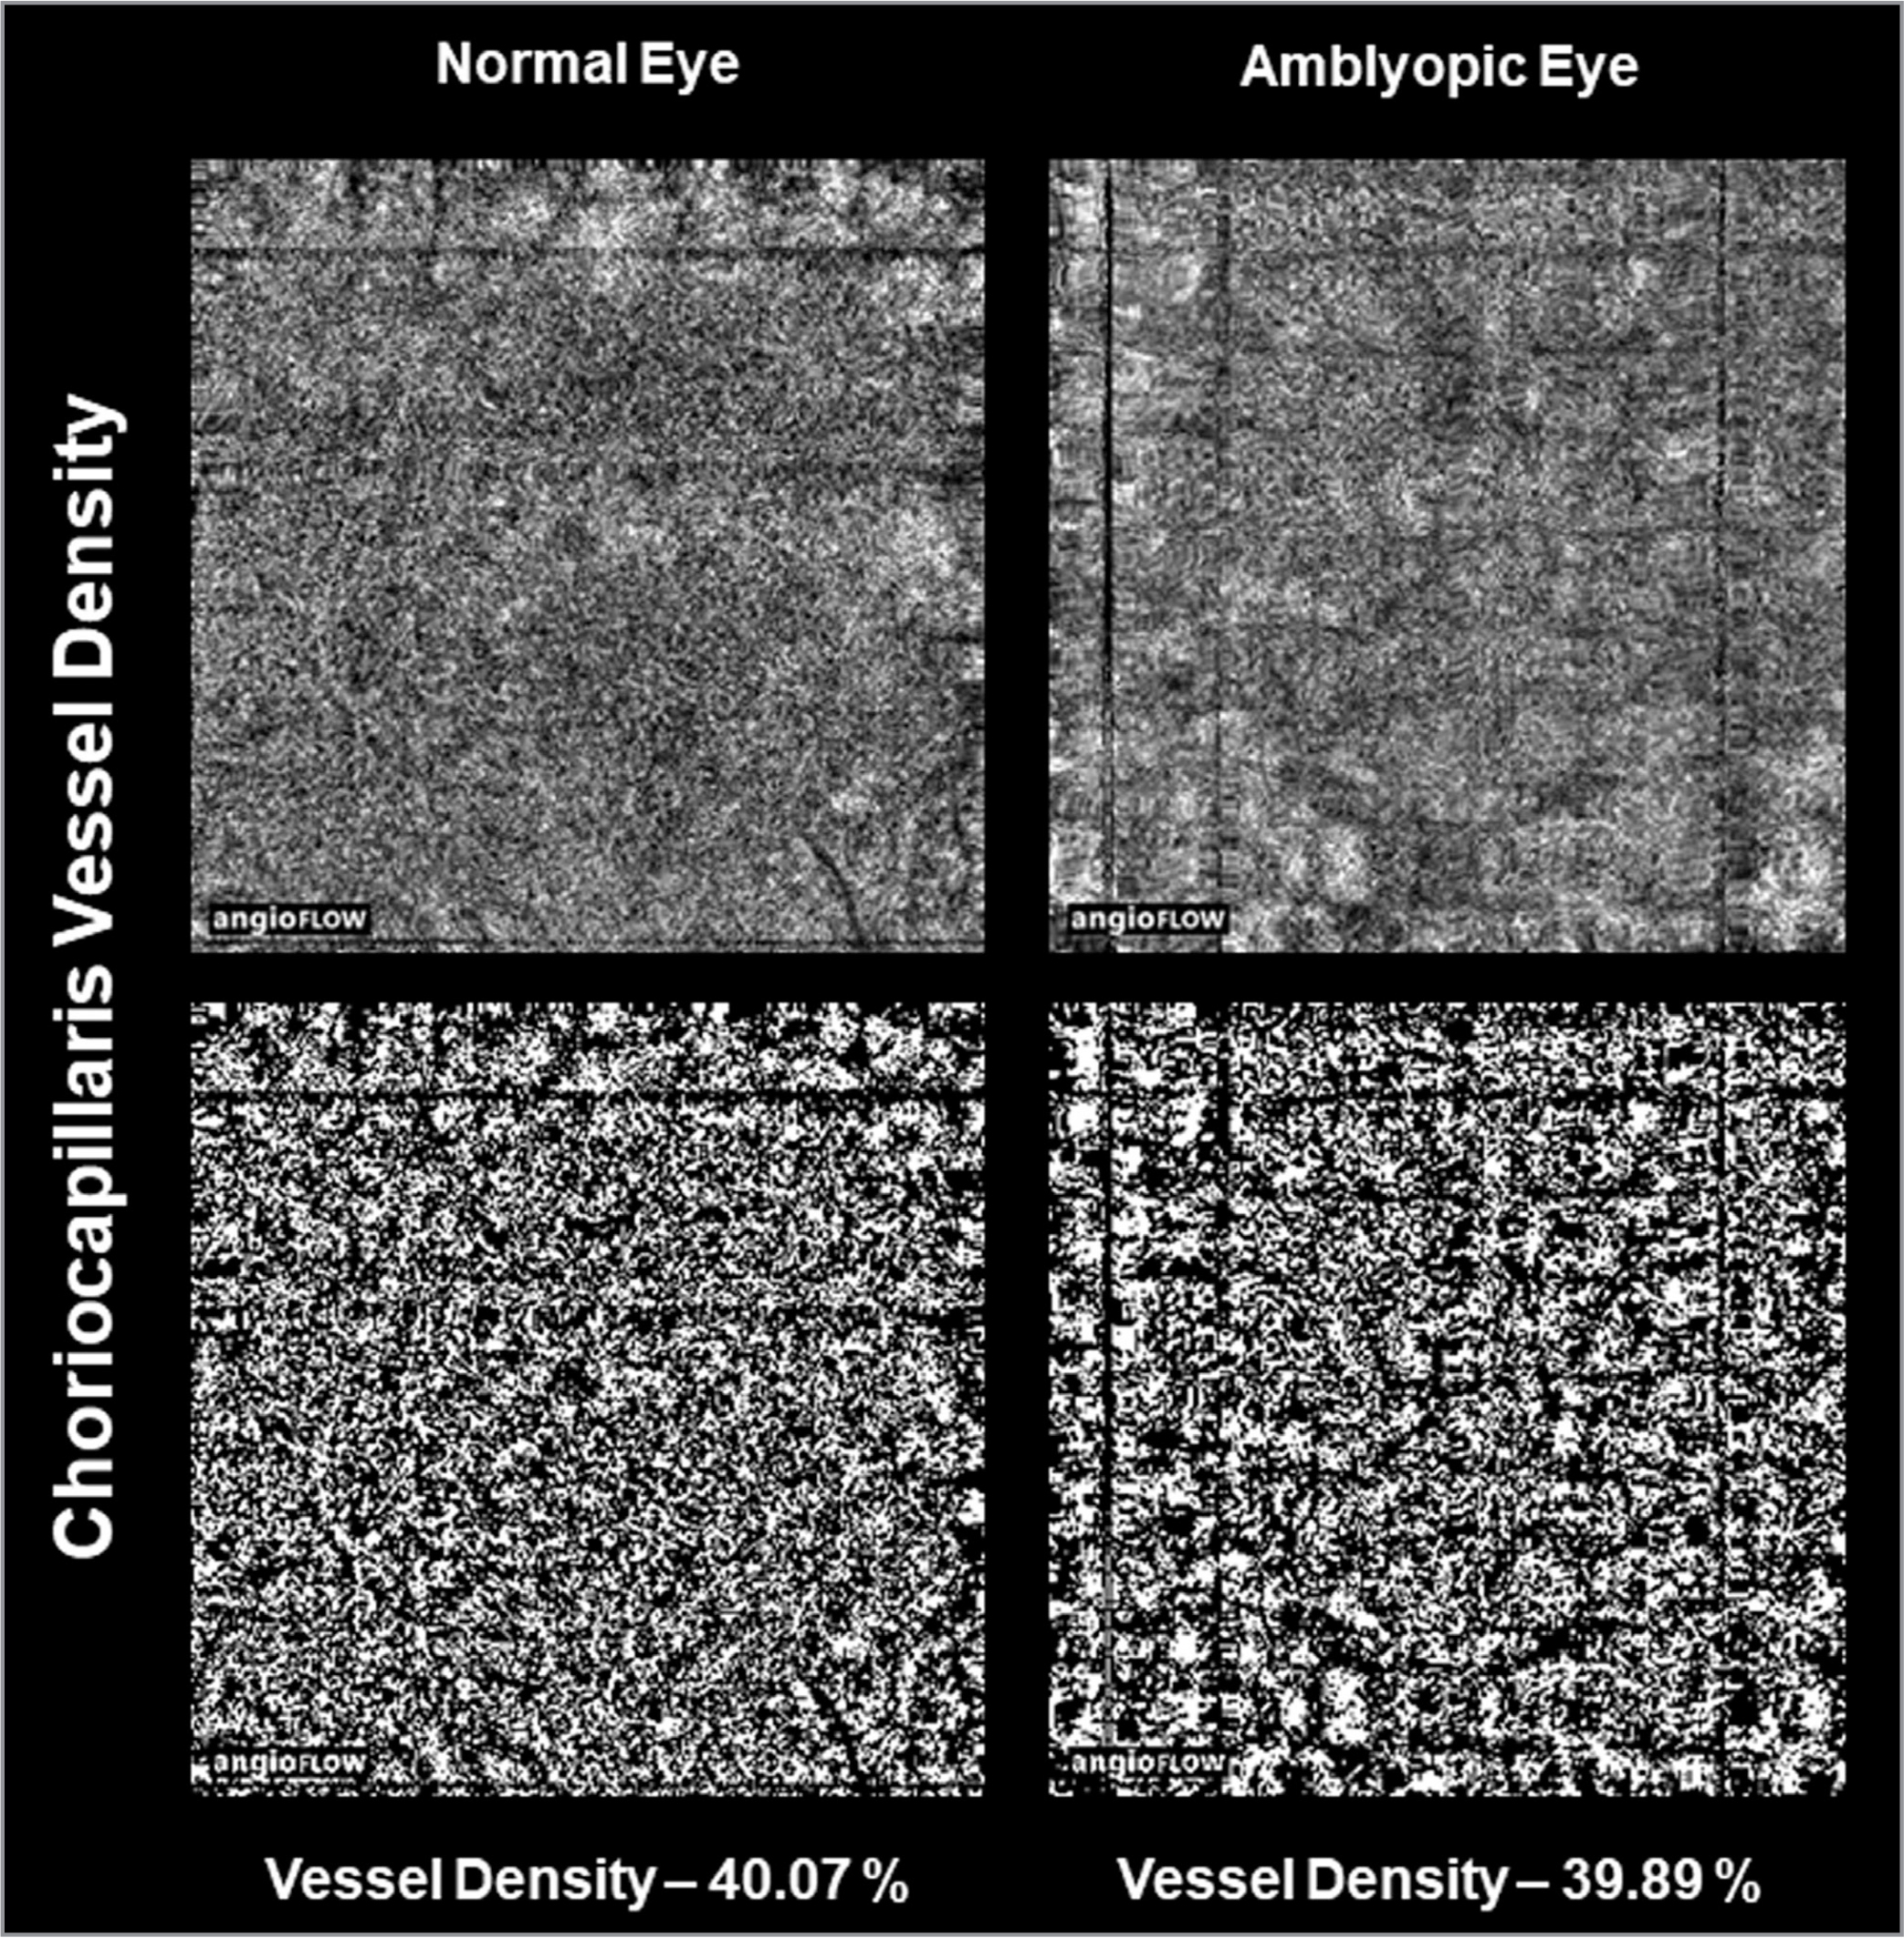 Image highlights attenuated choriocapillaris in the amblyopic eye in comparison to fellow eye.